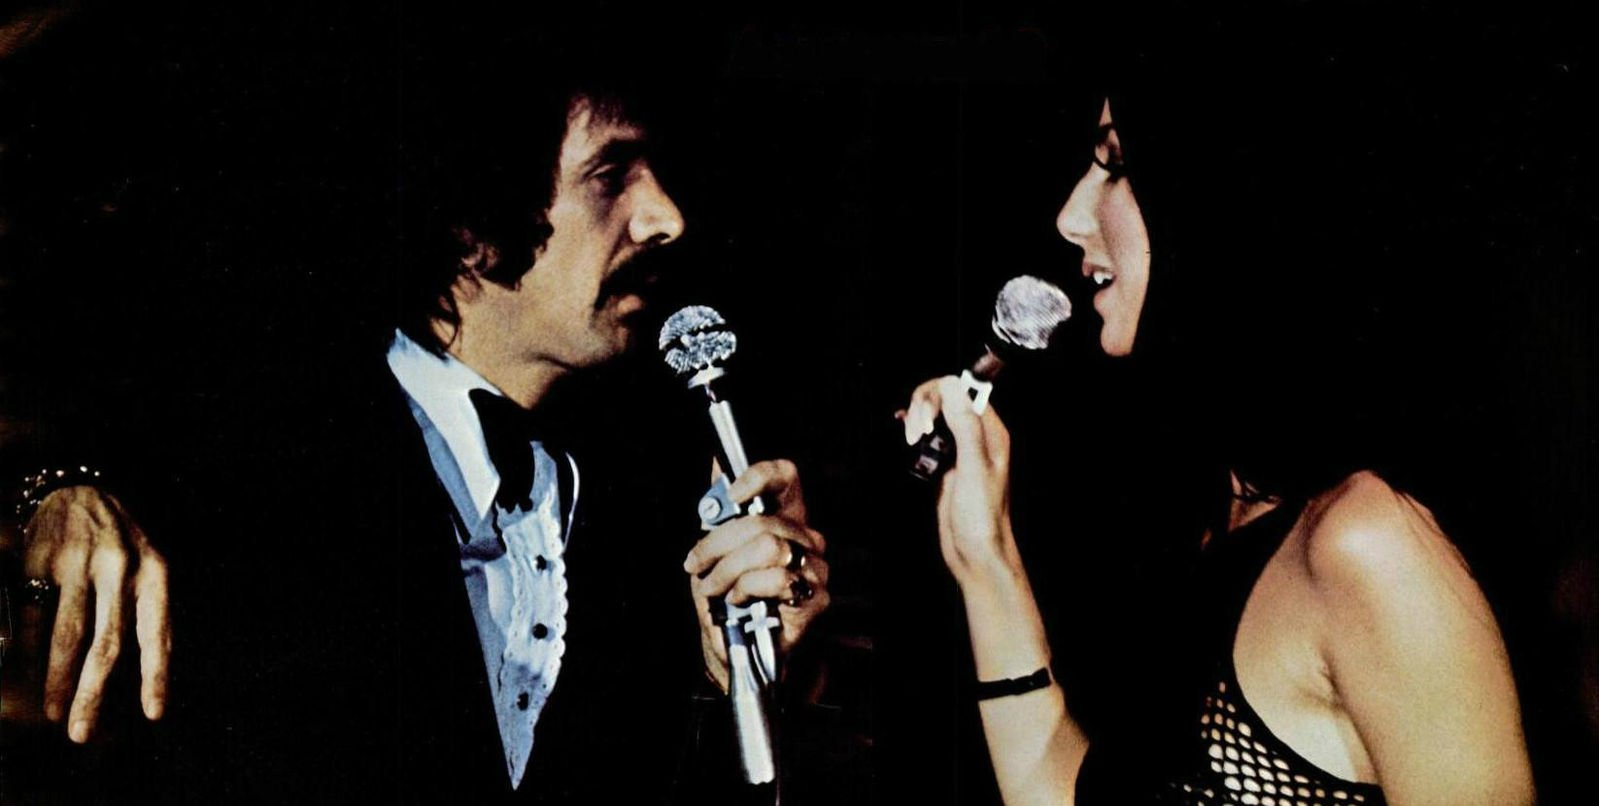 Image Source: Wikimedia Commons/Public Domain/Photo of Sonny and Cher performing live in 1971 from a Kapp Records ad promoting their live album